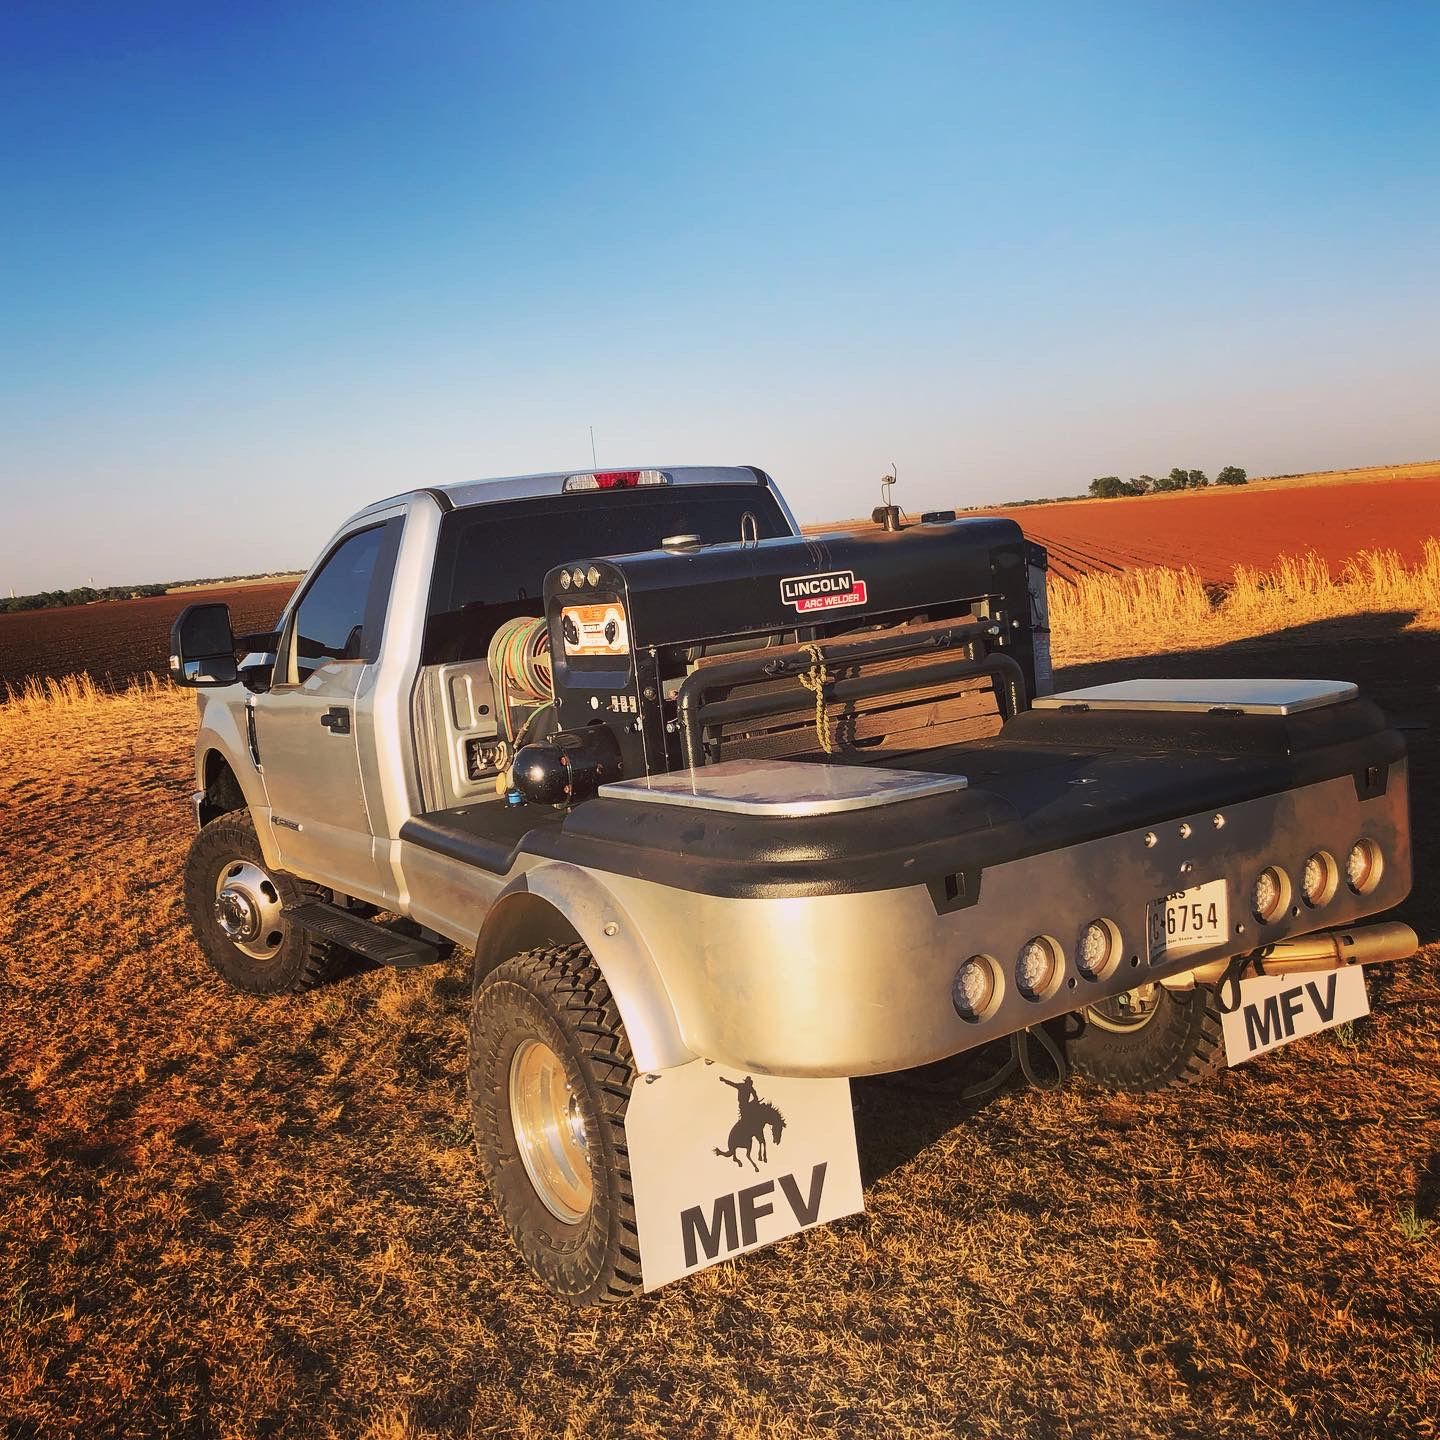 Pin by Vince Griffith on West Texas Rig Welder in 2020